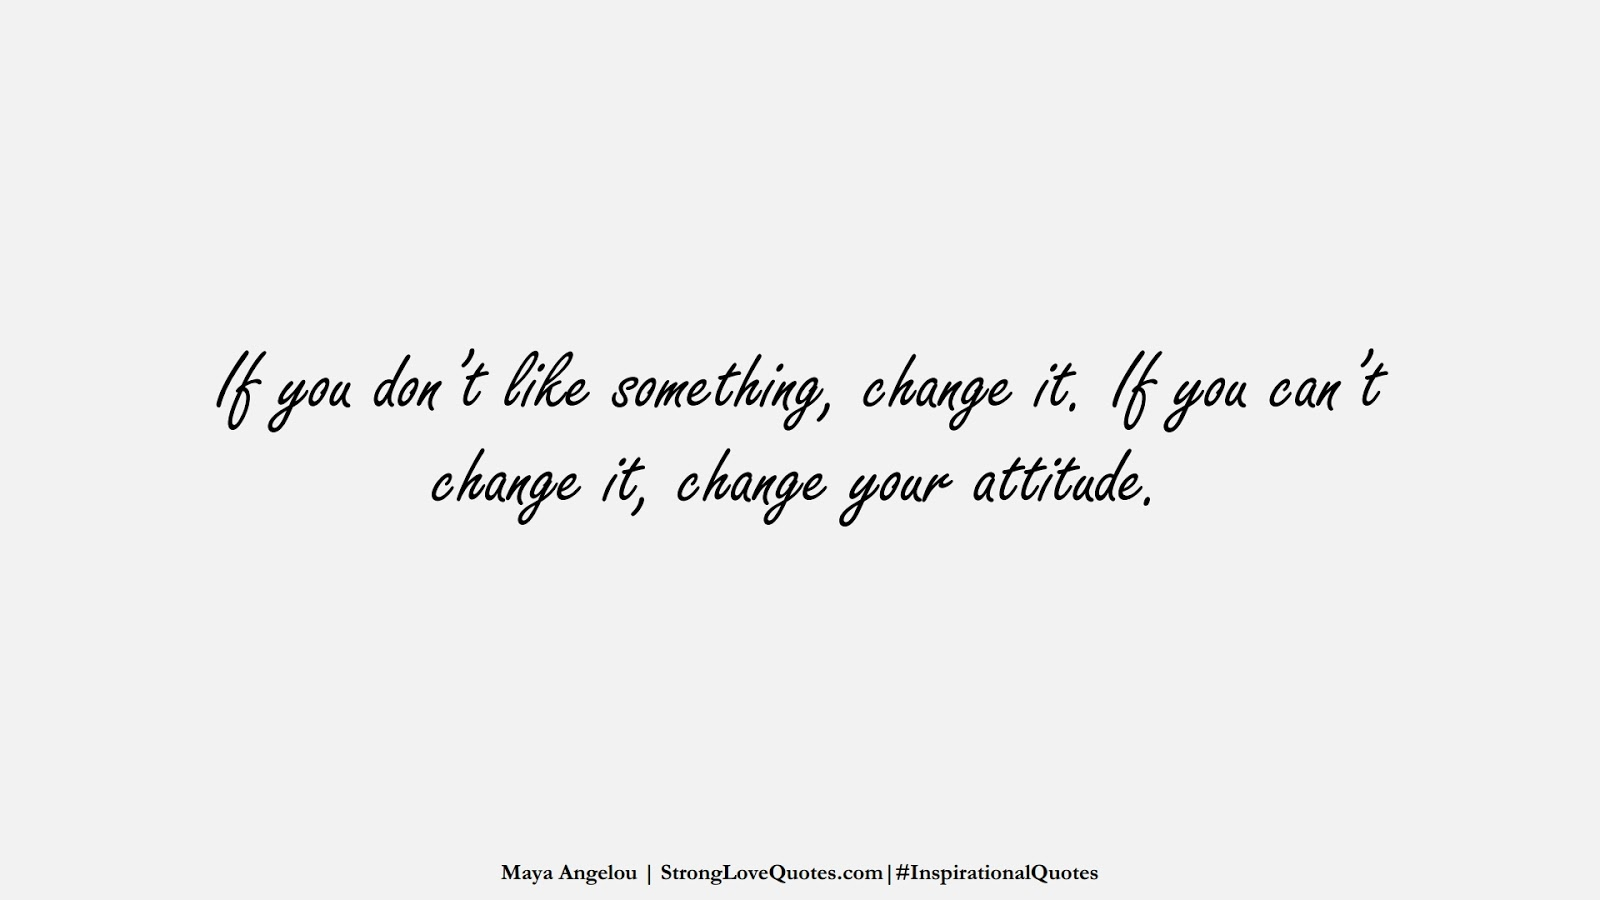 If you don't like something, change it. If you can't change it, change your attitude. (Maya Angelou);  #InspirationalQuotes